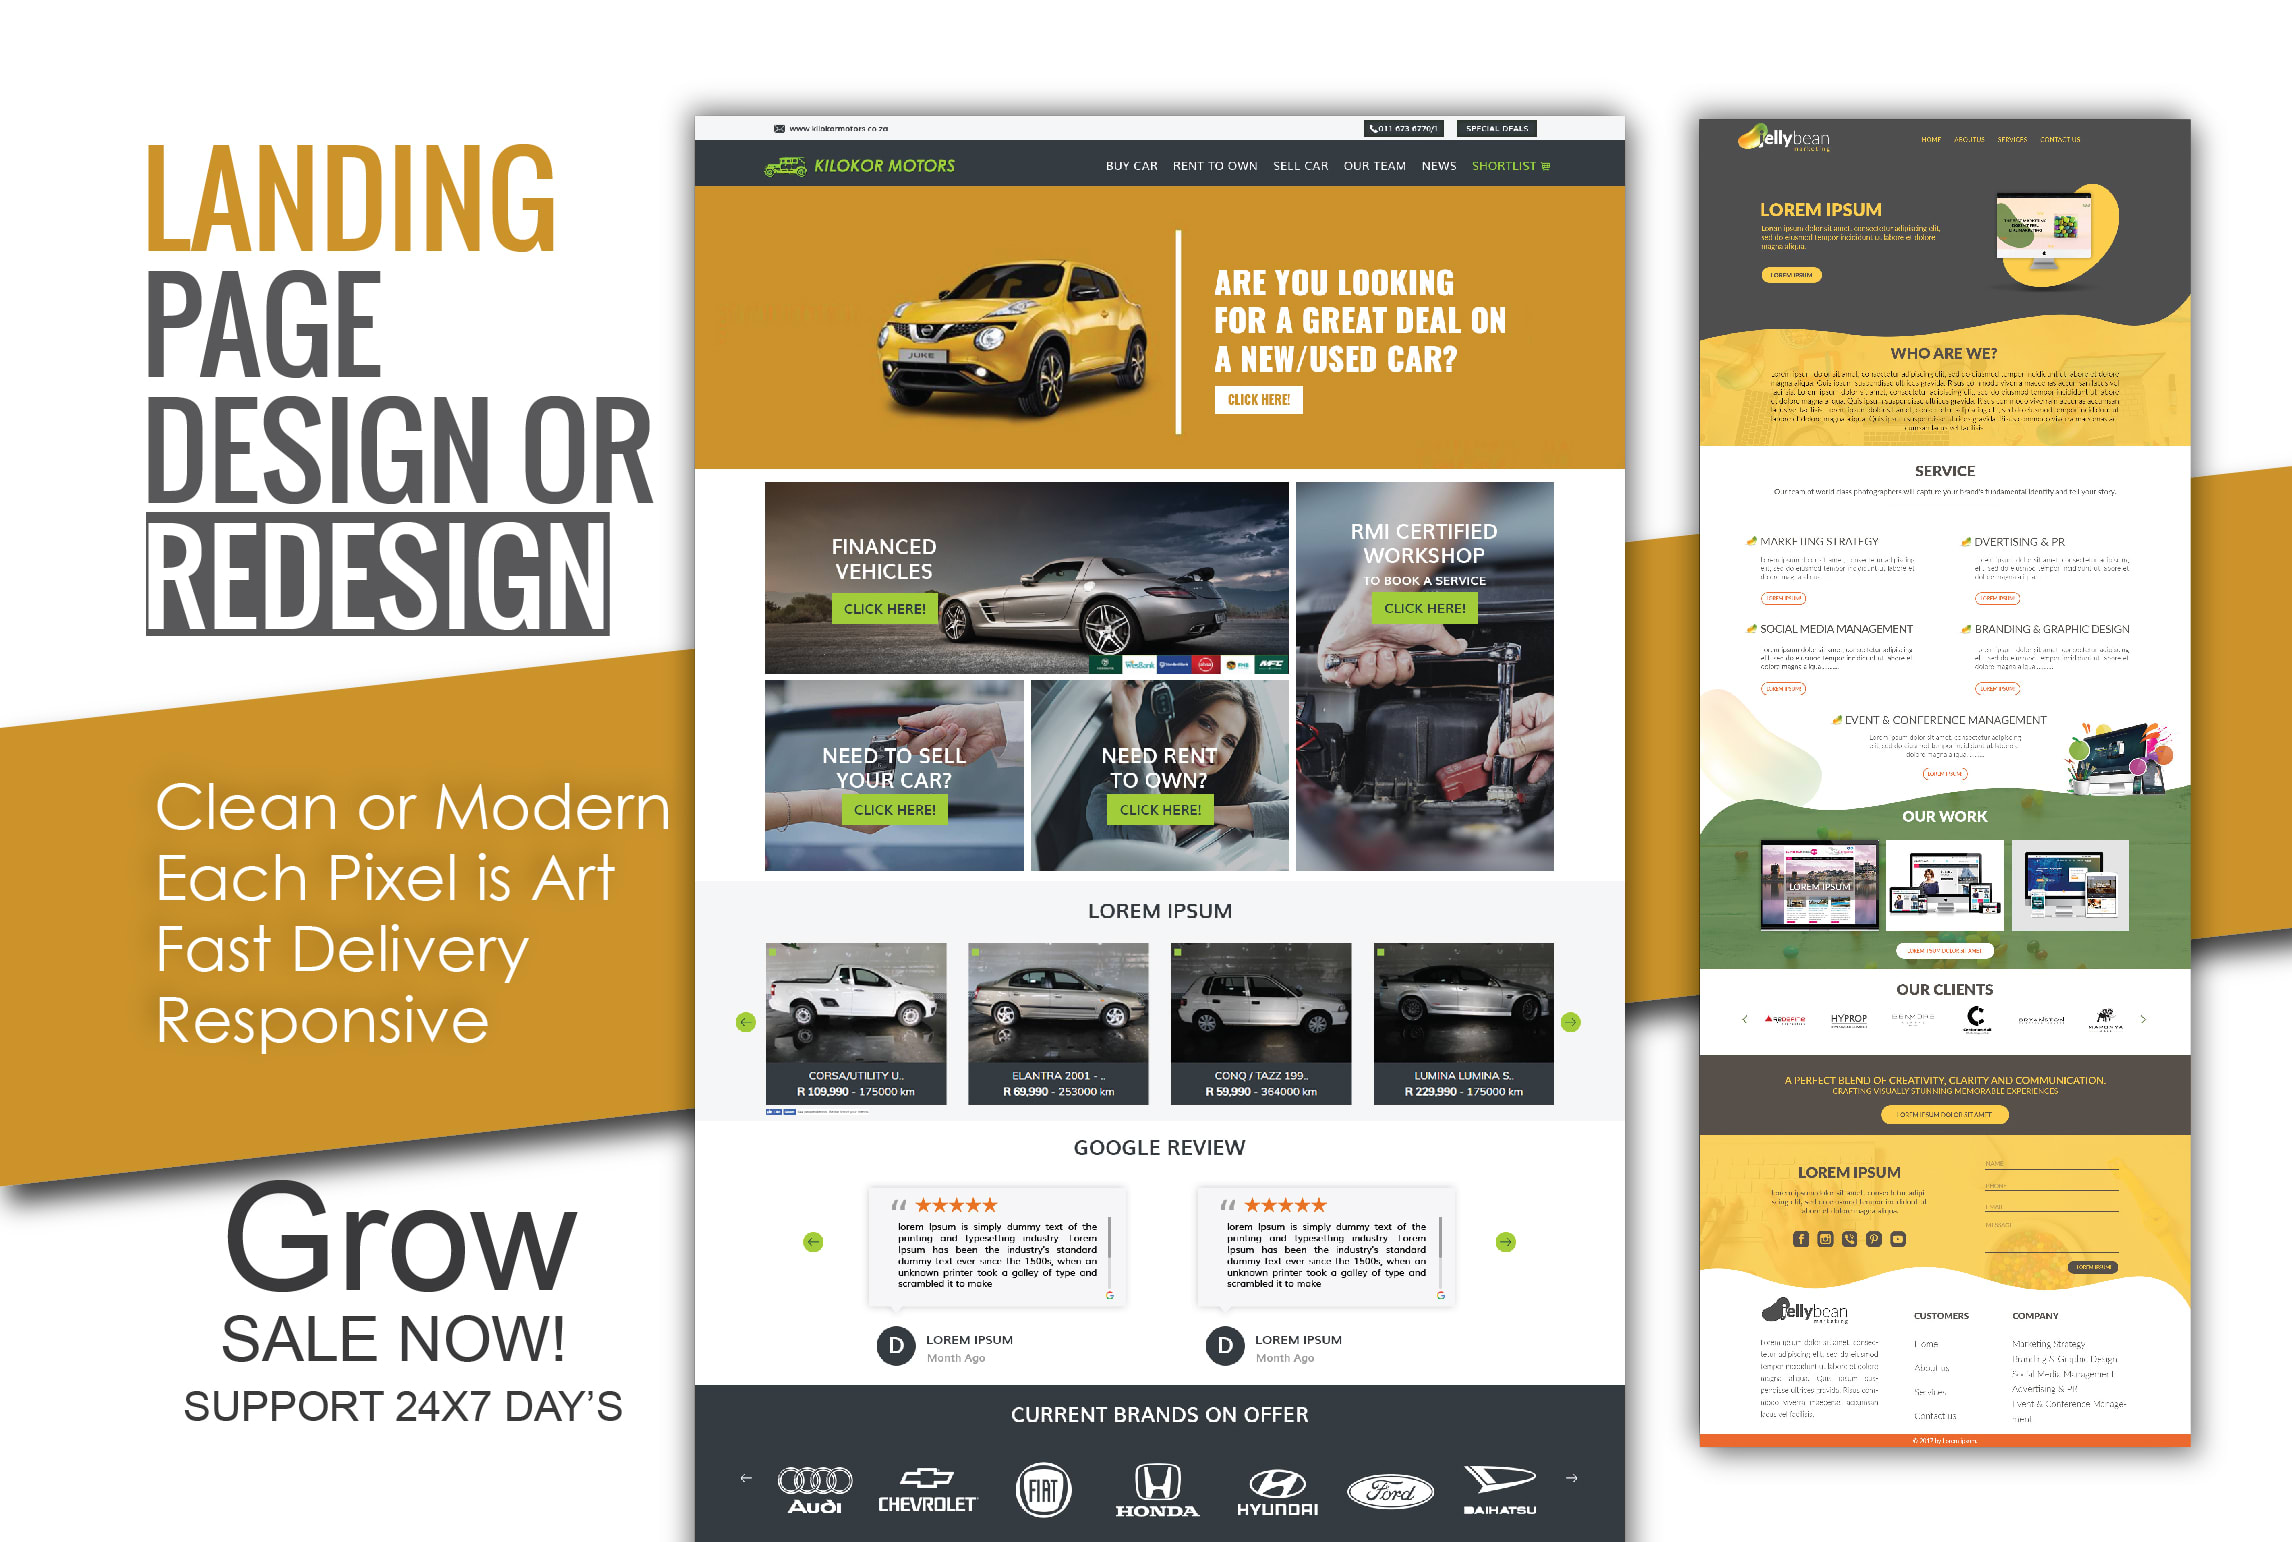 I will do professional and modern landing page design or redesign of, FiverrBox